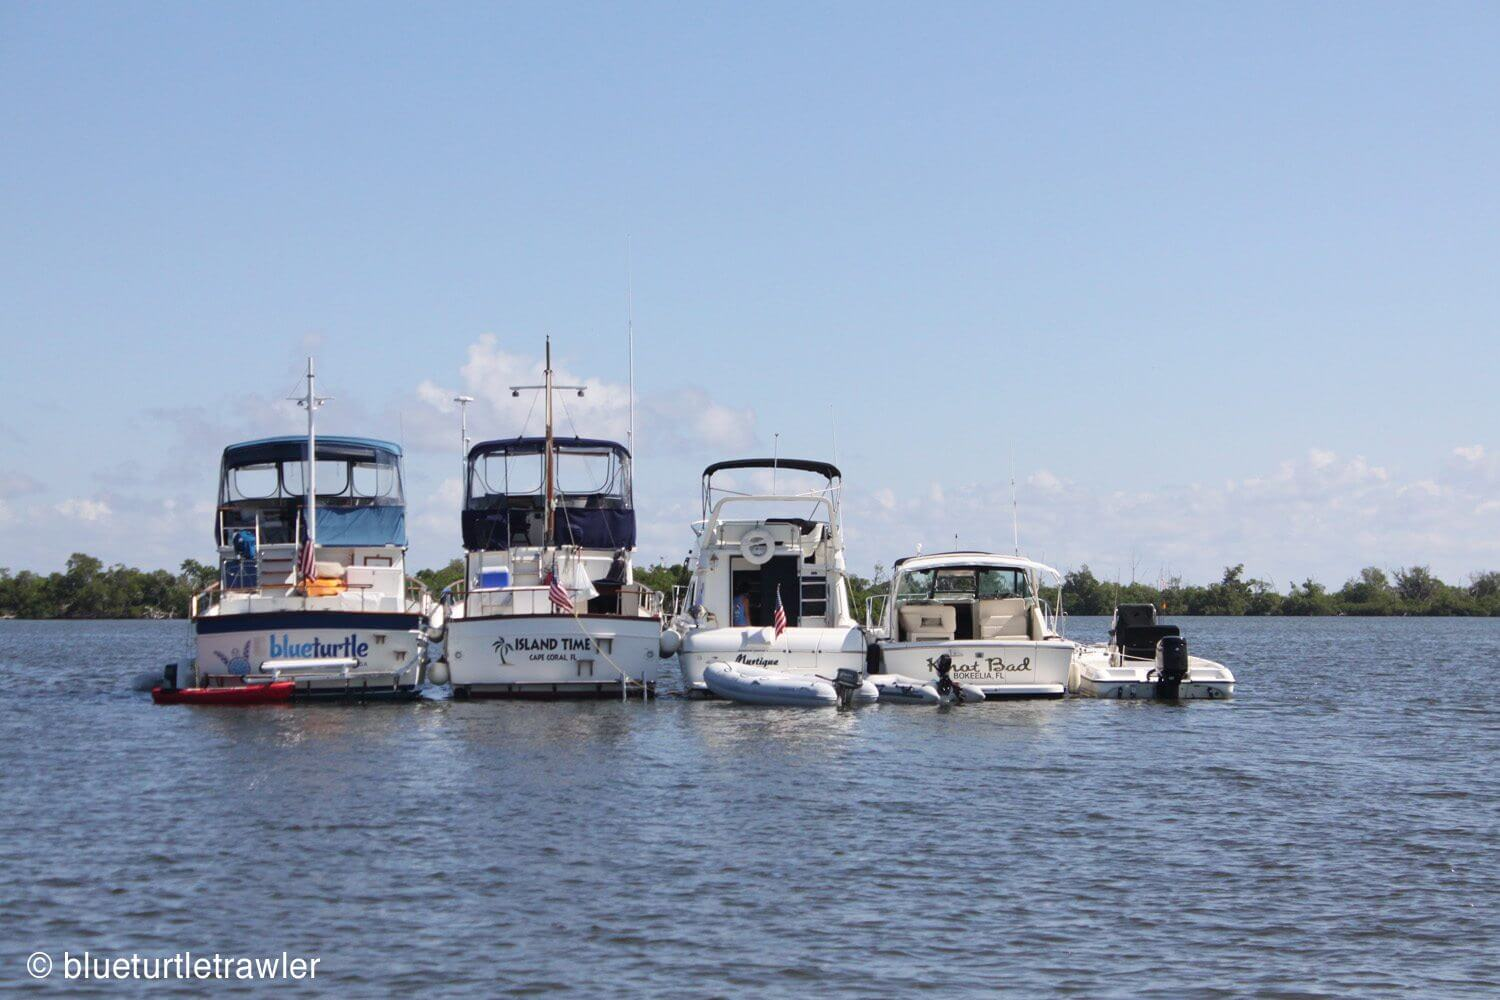 Our Labor Day weekend flotilla